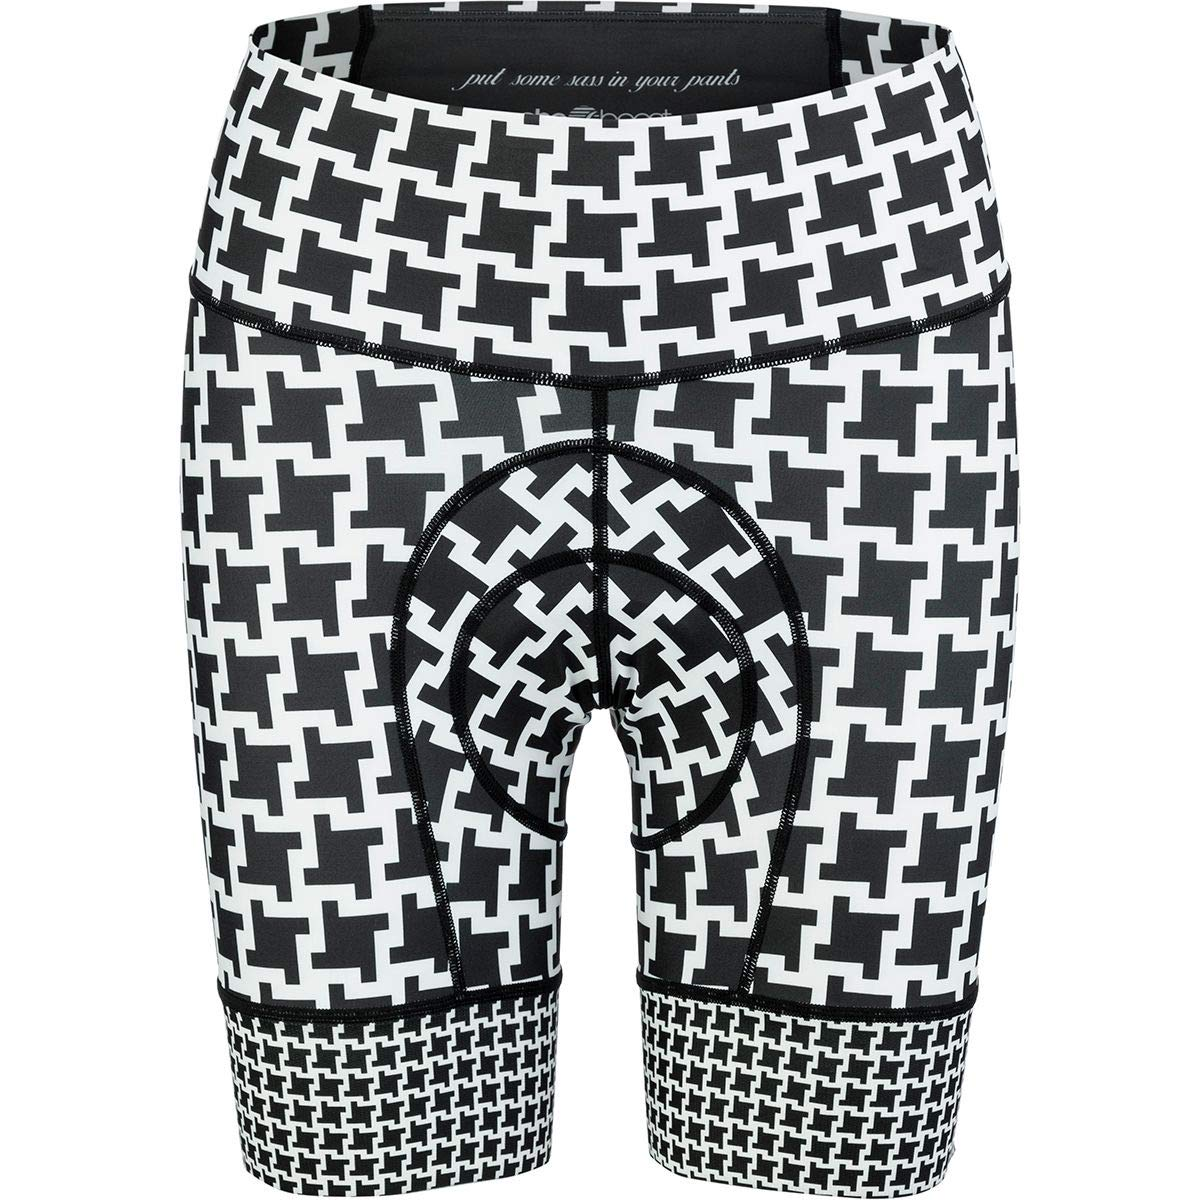 SHEBEEST Petunia Short - Women's Dogs Tooth/Black/White, L